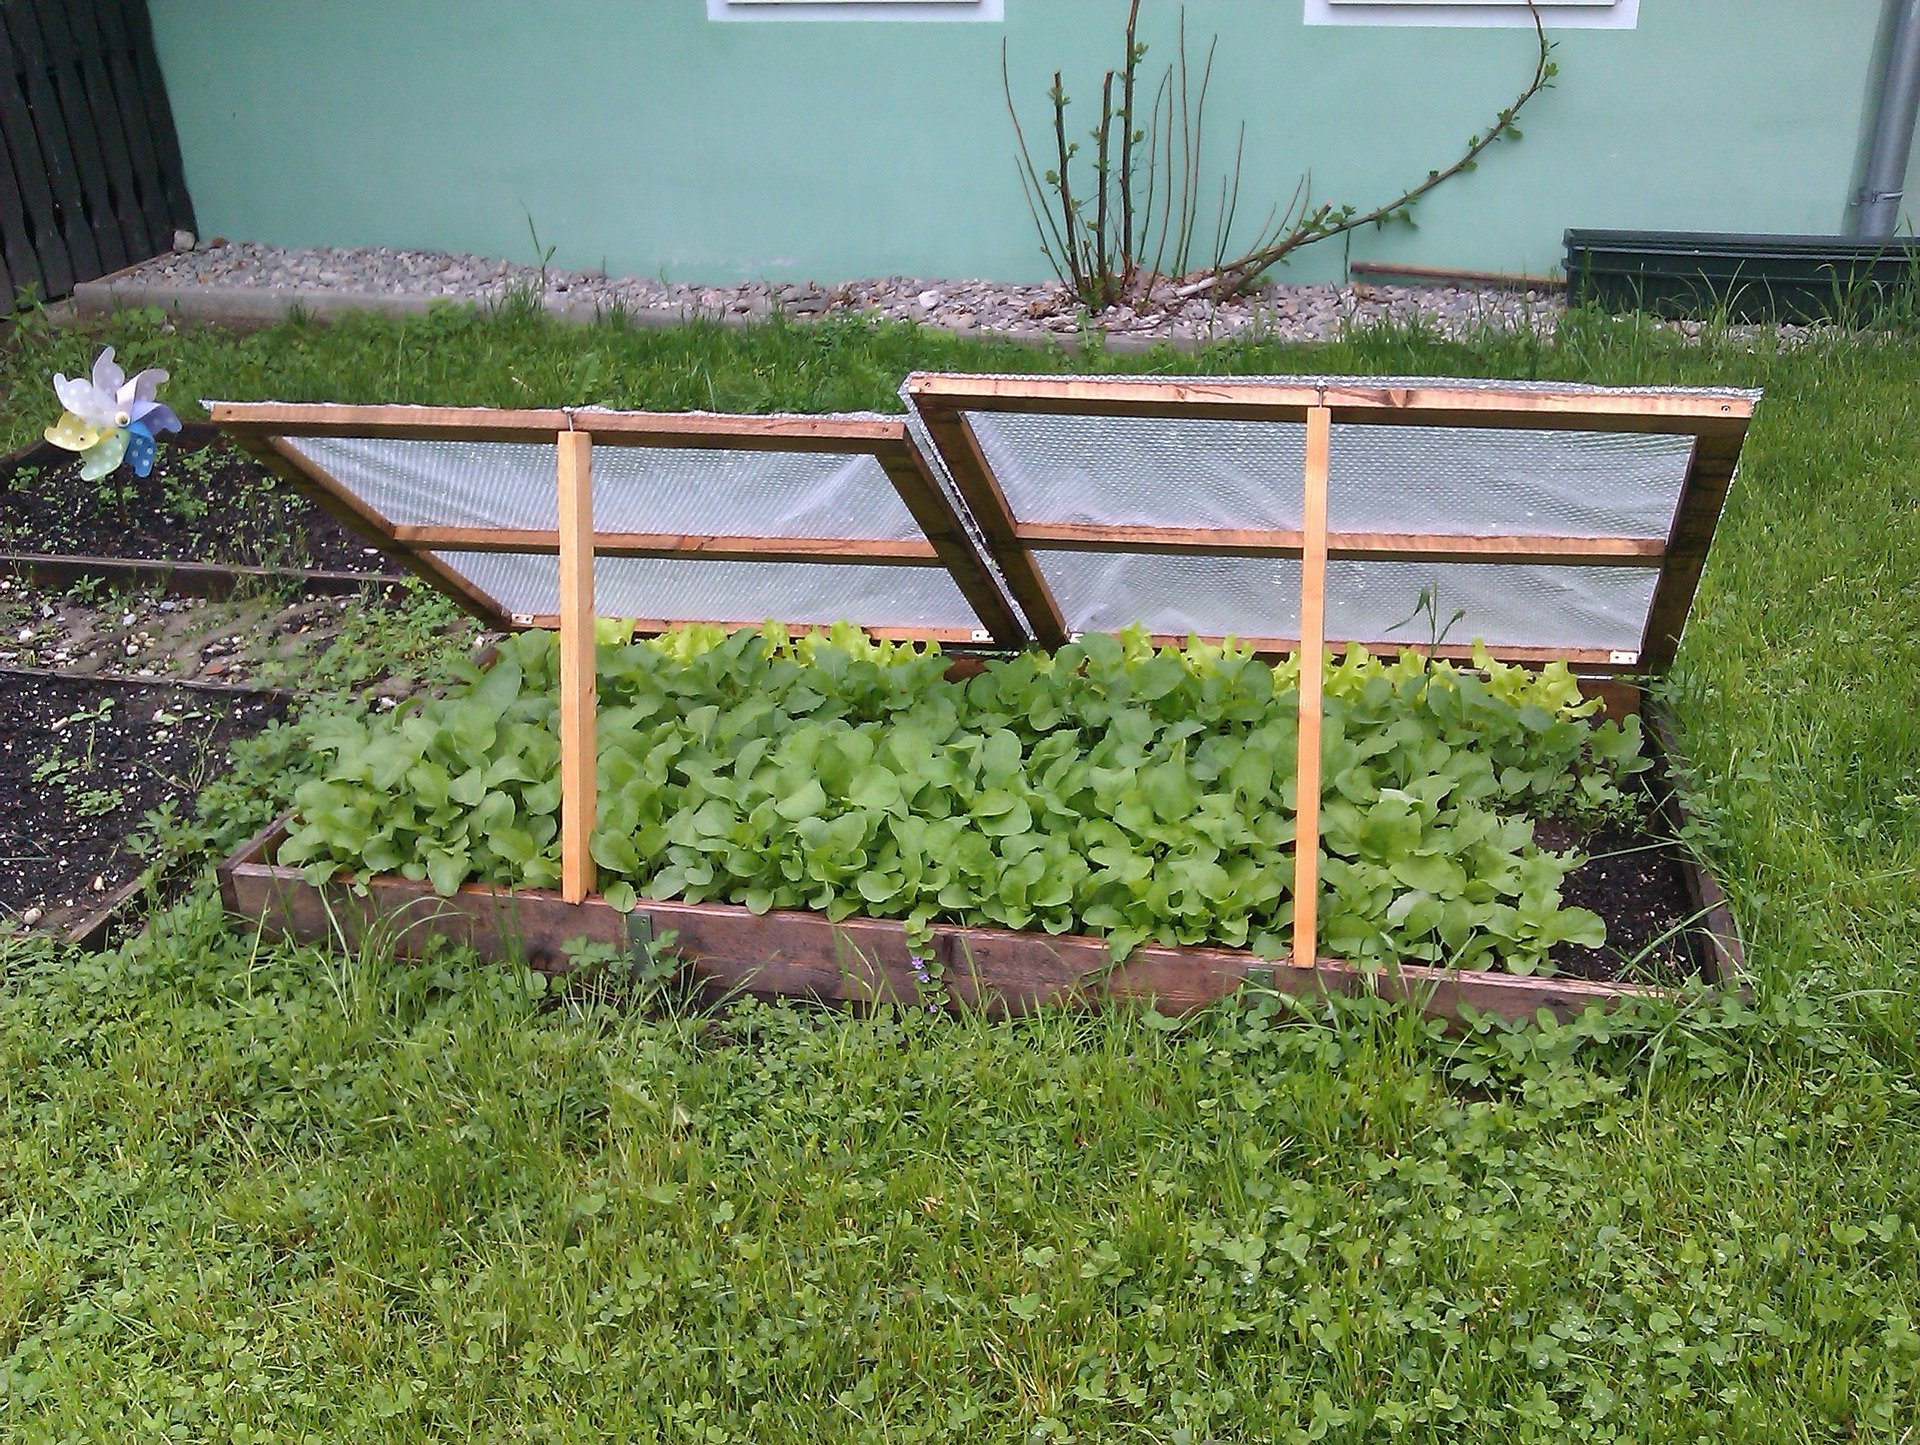 Cold frame to protect from frost